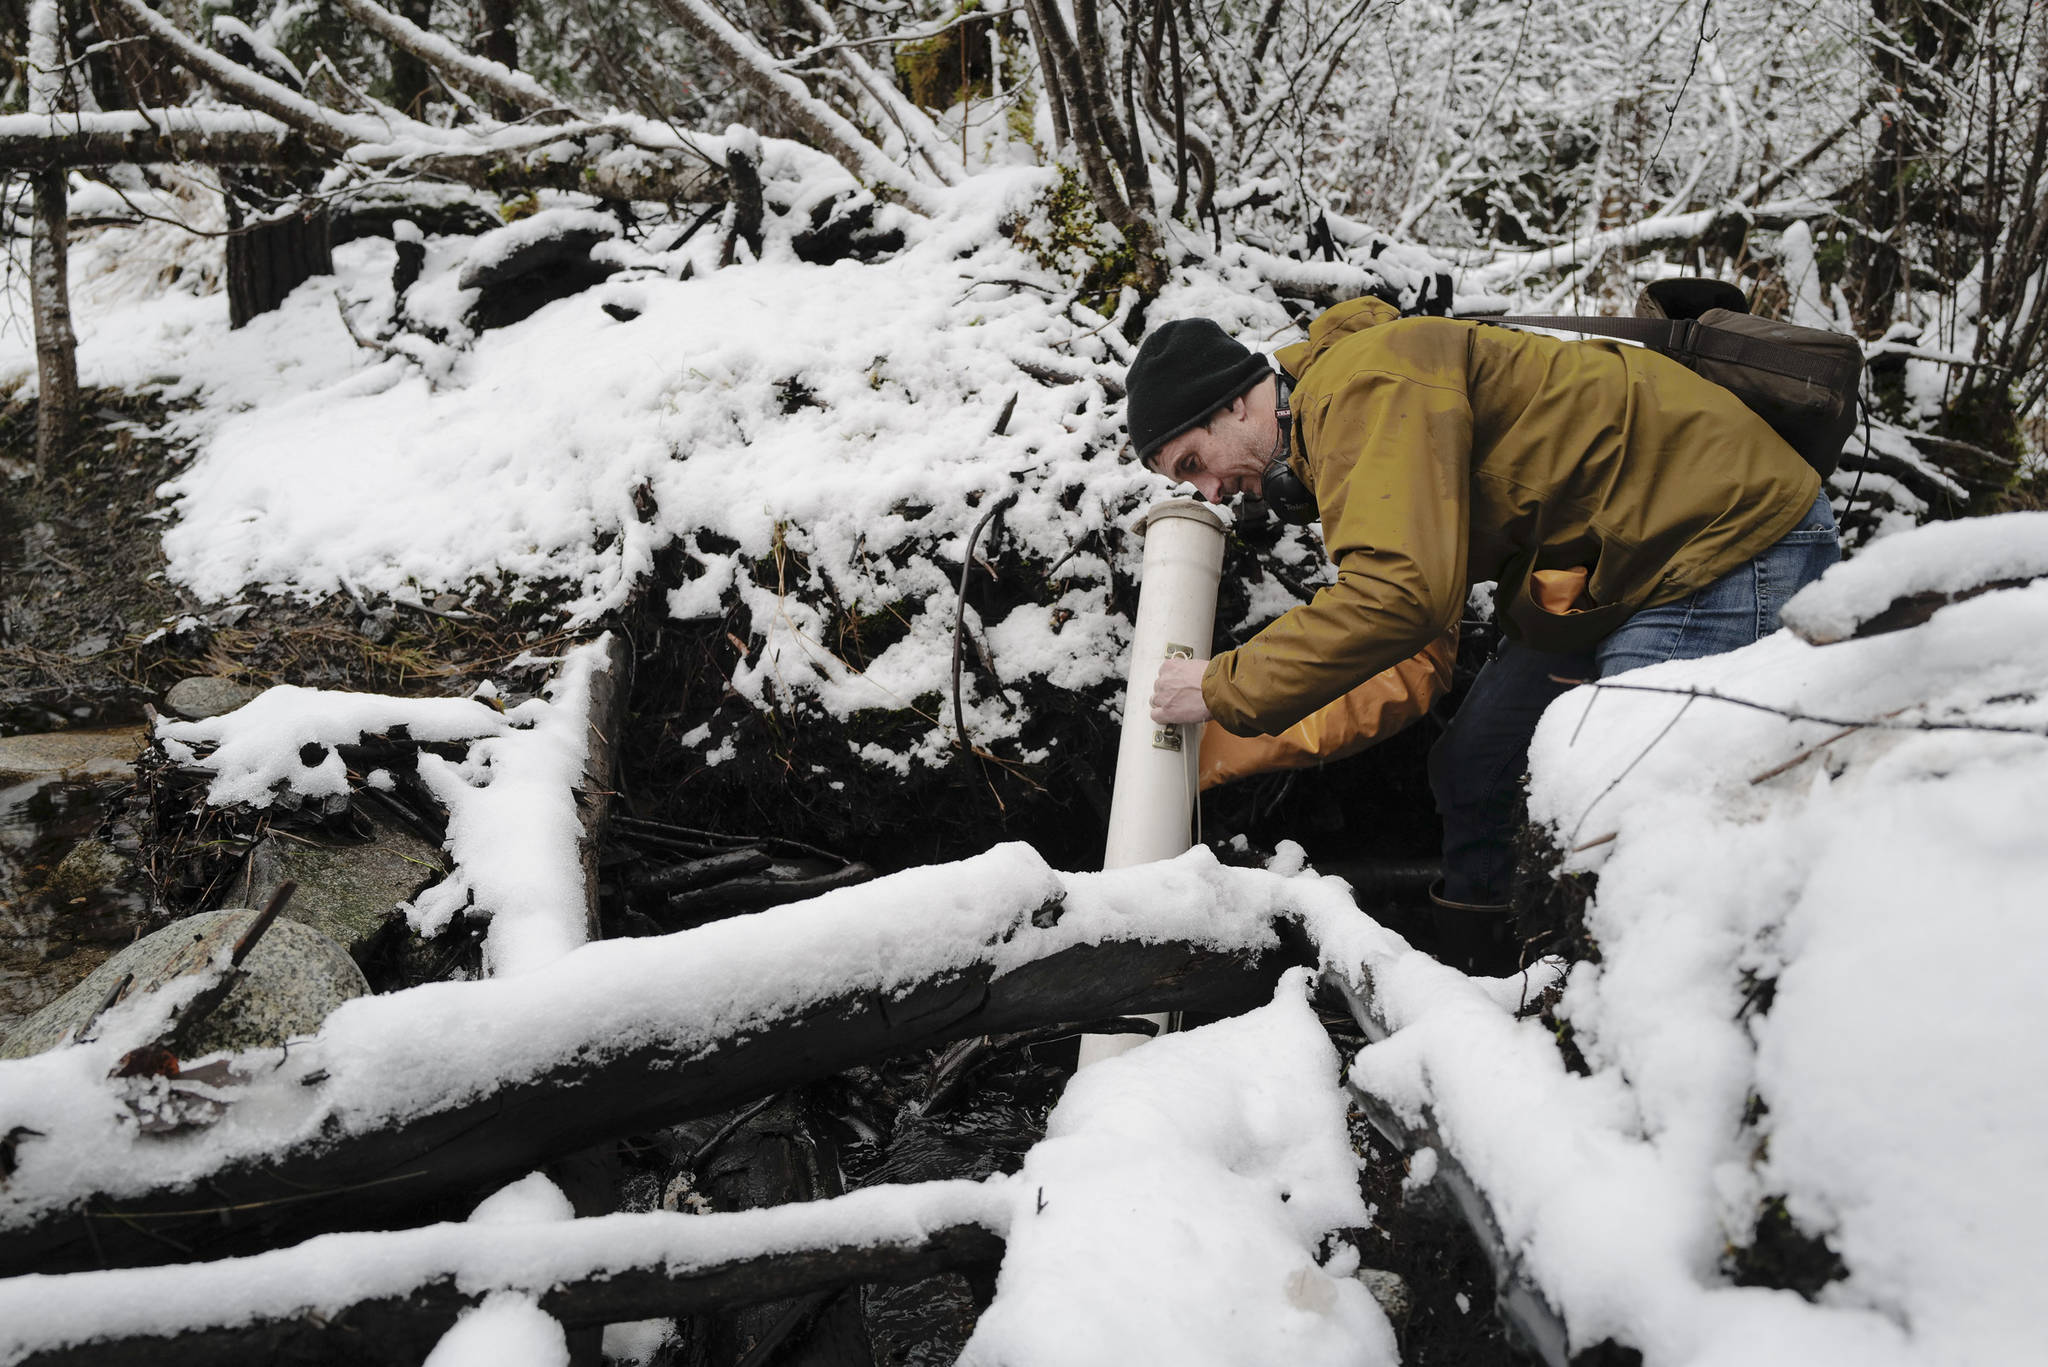 Jake Musslewhite, a fisheries biologist with the U.S. Forest Service, searches for a radio tag used in a study tracking adult coho salmon in the Dredge Lakes drainage system. (Michael Penn | Juneau Empire)